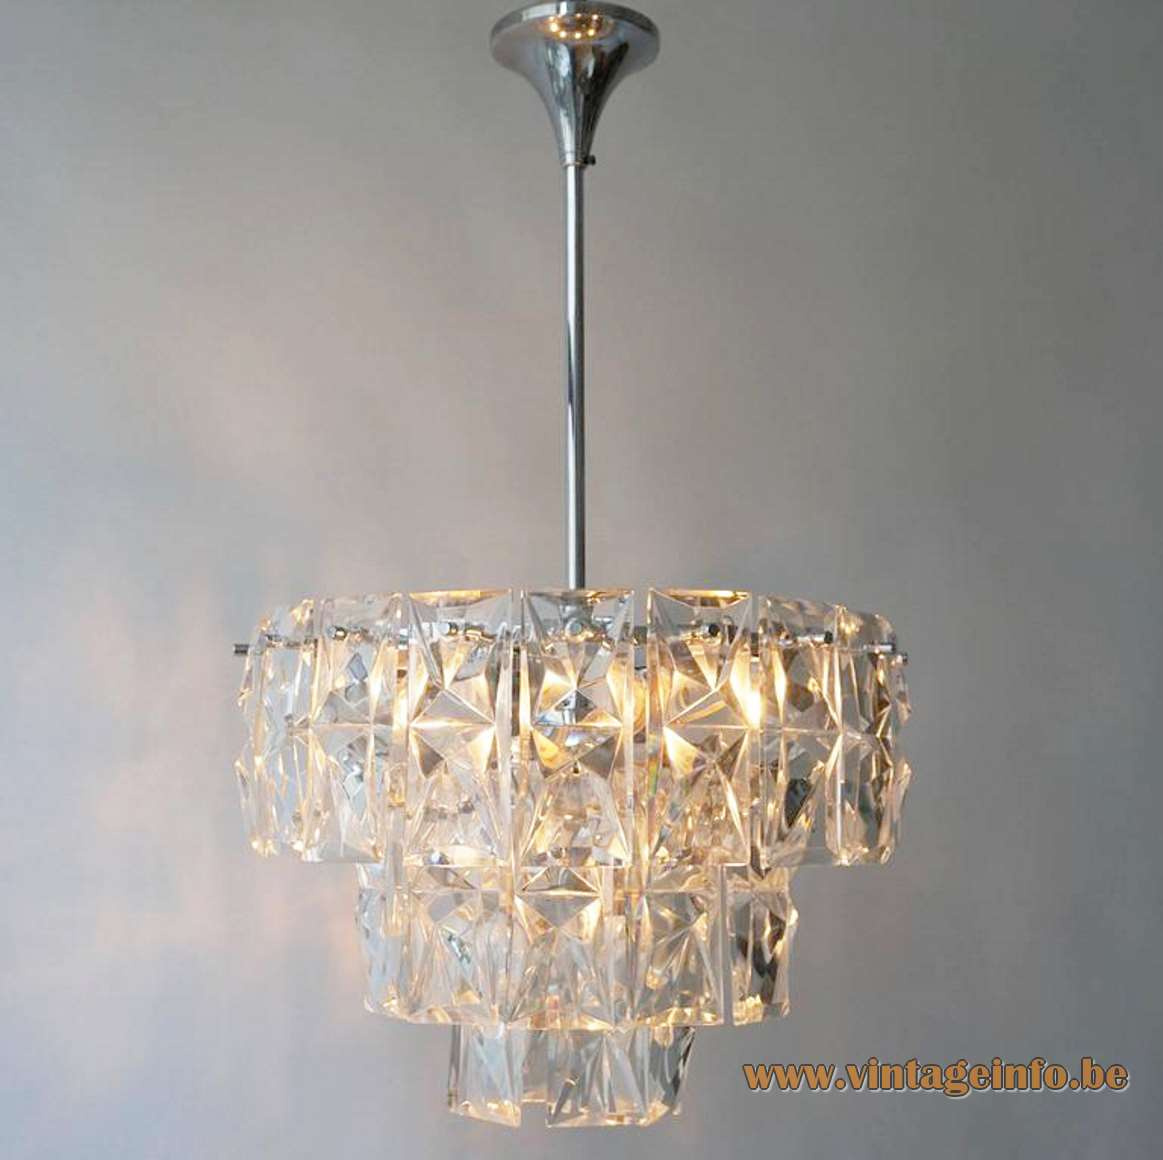 lighting style venini pendant huge f in multi color chandelier sale chandeliers for lights prism id furniture multicolor at murano org